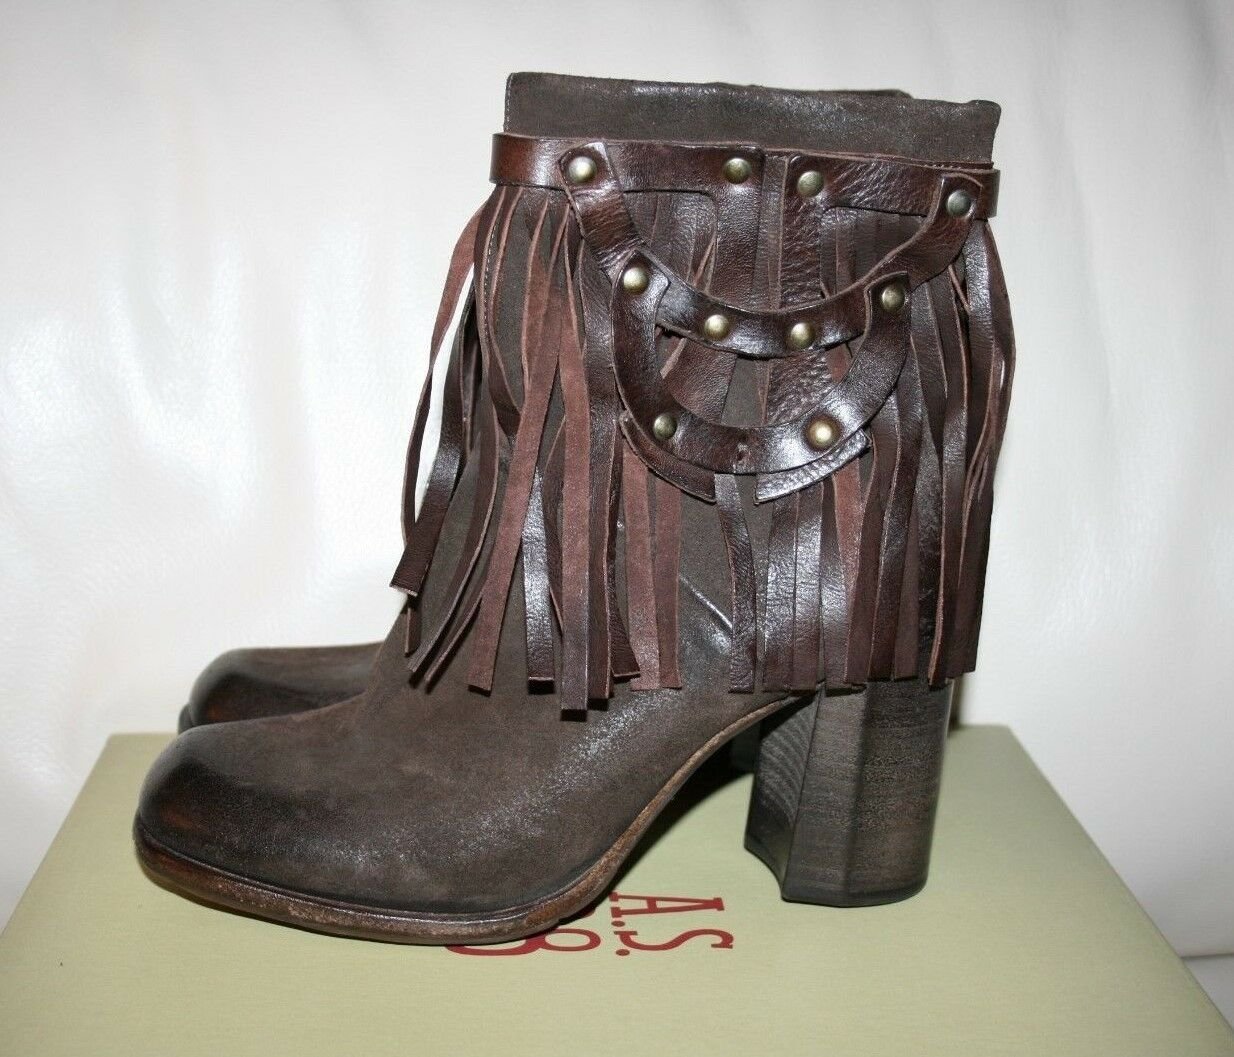 NIB FREE PEOPLE A.S.98 Brown Leather Fringe Ankle Boots Booties   37 6.5-7